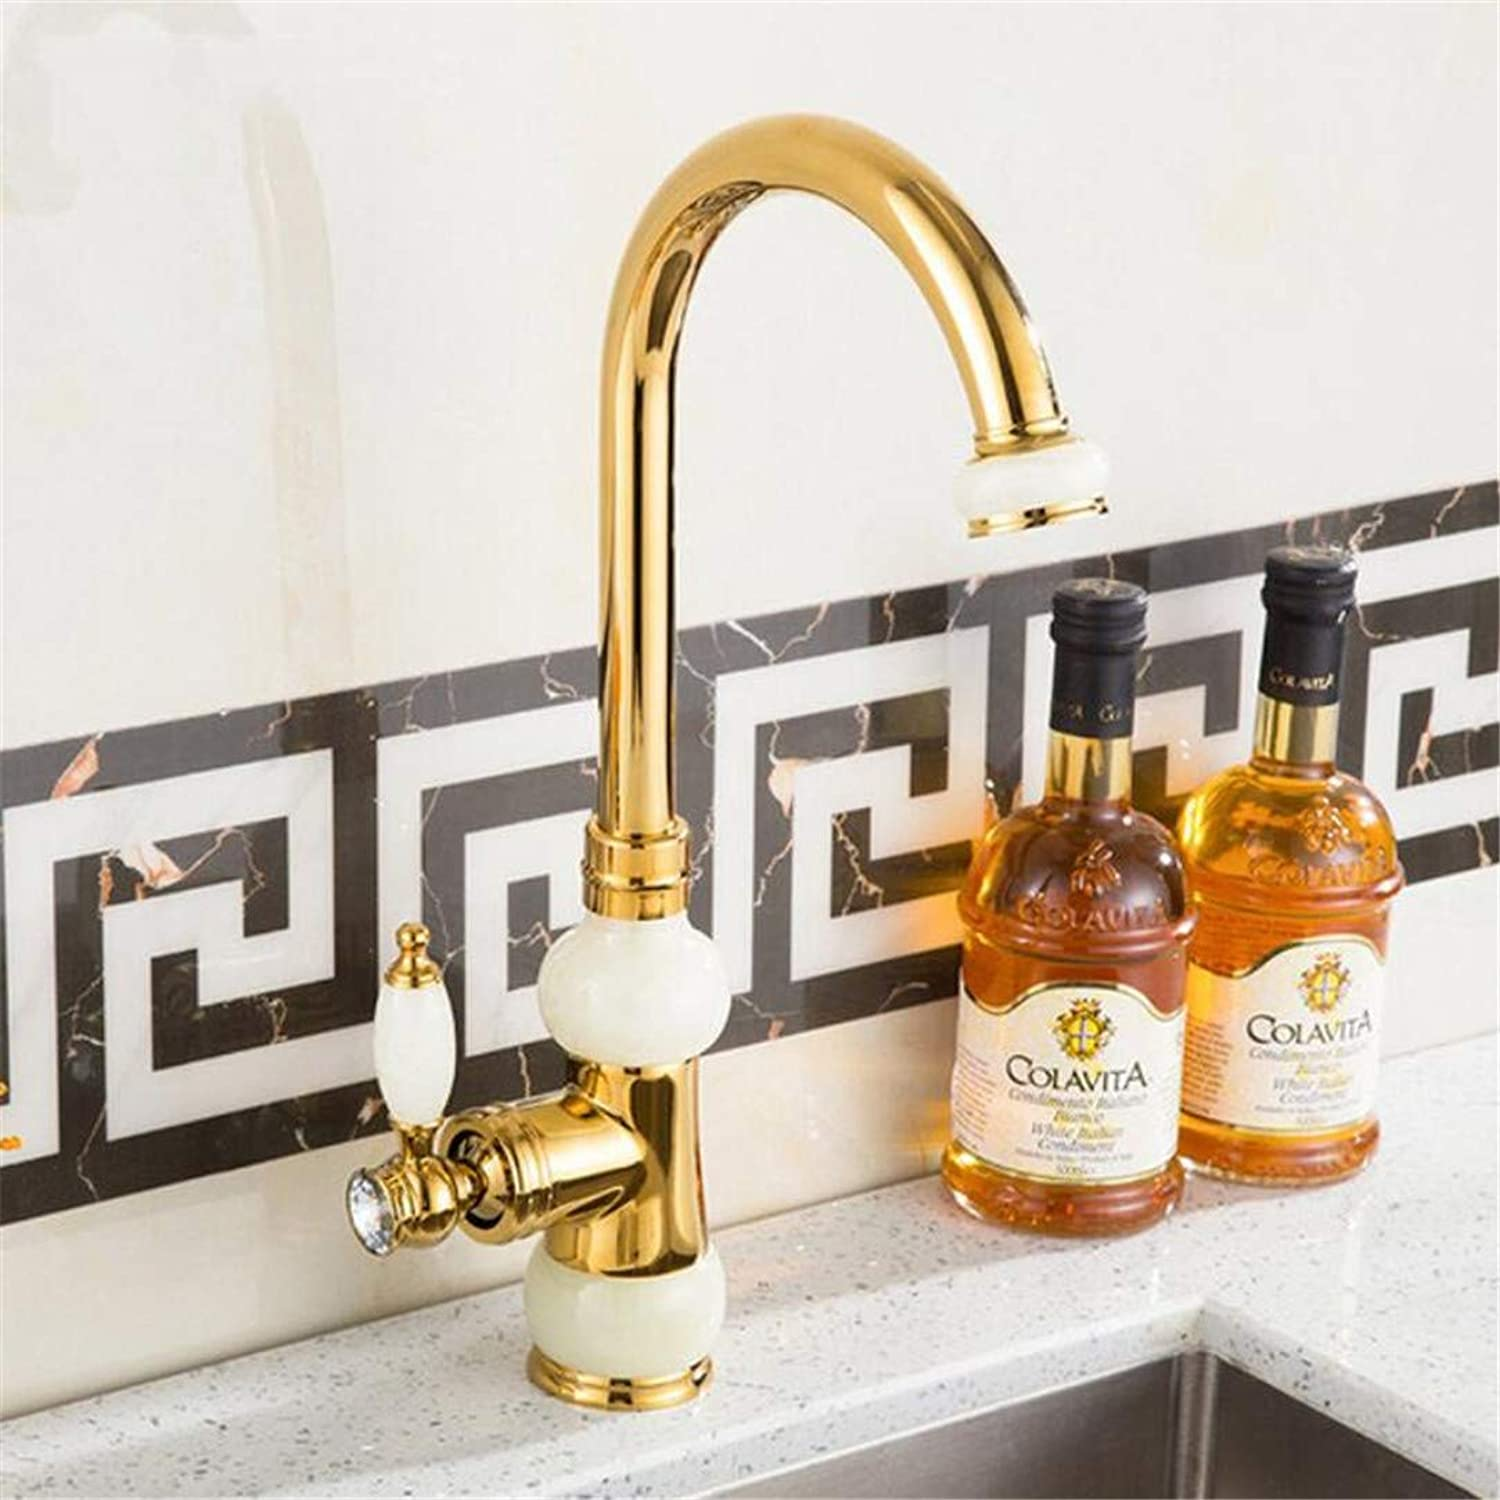 Faucet Washbasin Mixer360 Degree Swivel Basin Faucets Euro gold Washbasin Faucet Luxury Tall Taps Single Handle Vanity Single Hole Mixer Water Taps